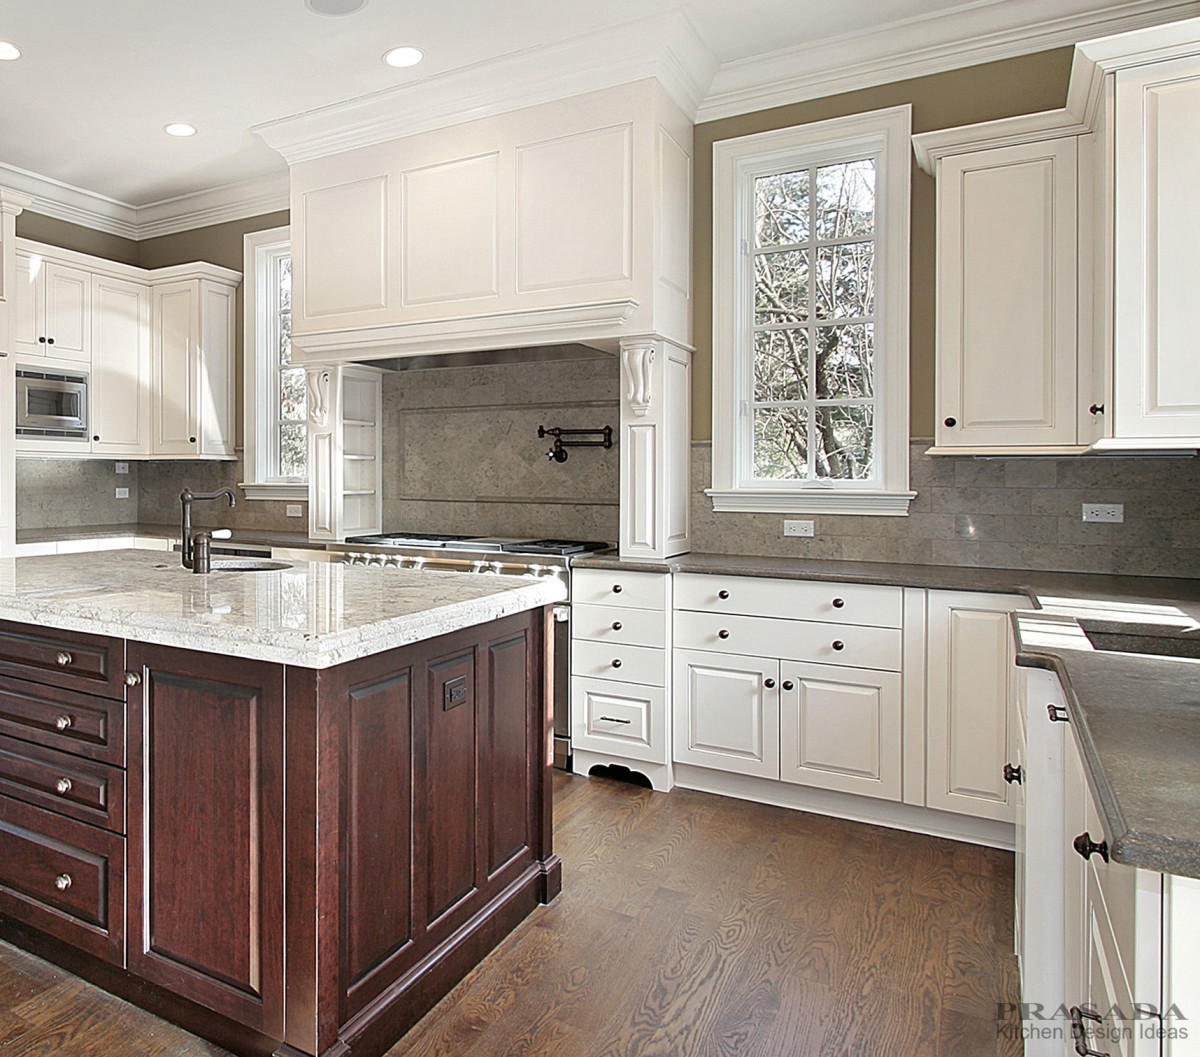 Kitchen Designs: PRASADA Kitchens And Fine Cabinetry